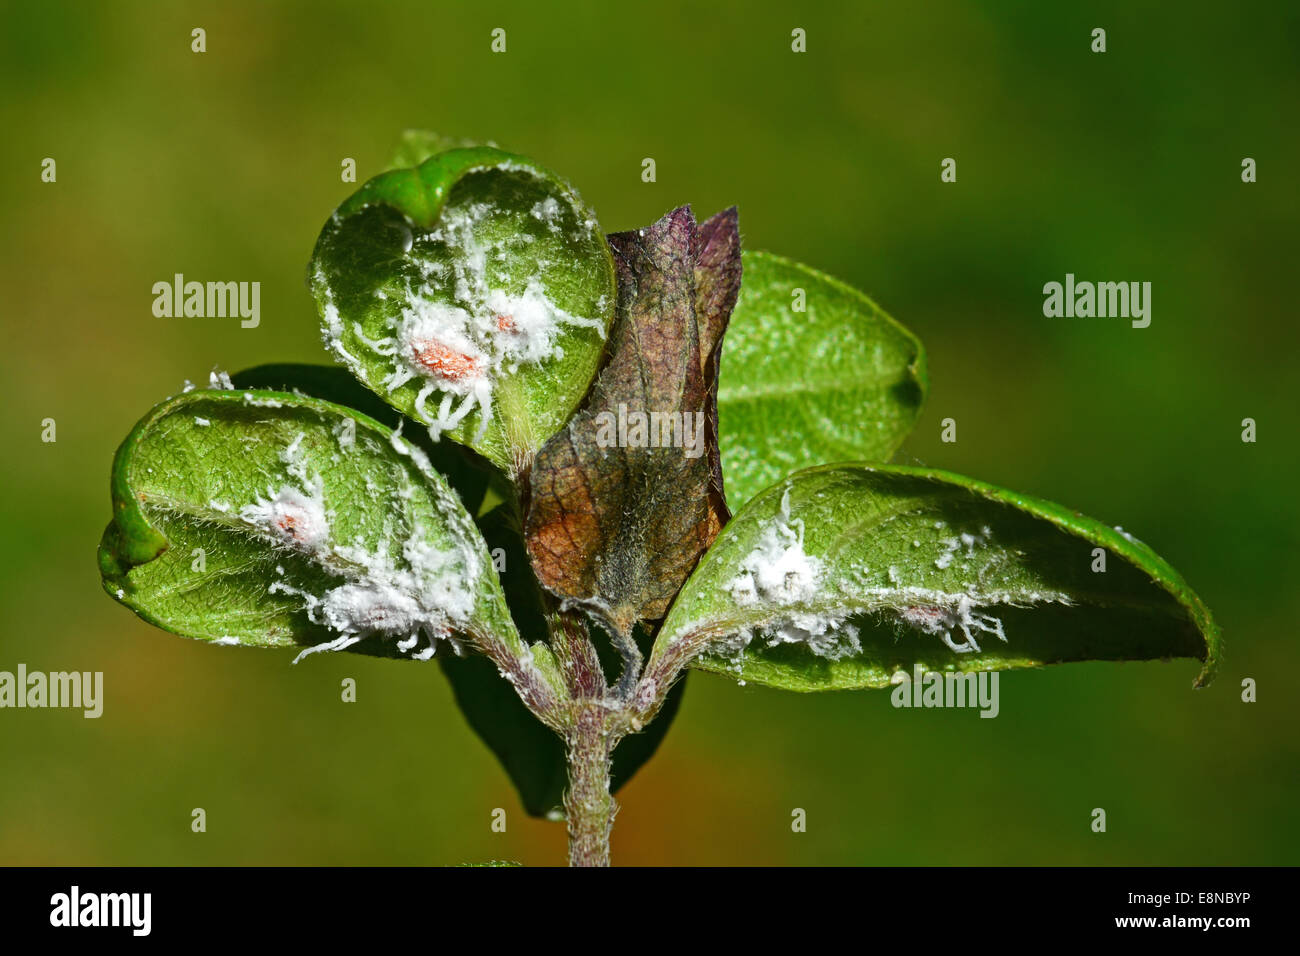 Sap sucking Mealybug, - Stock Image